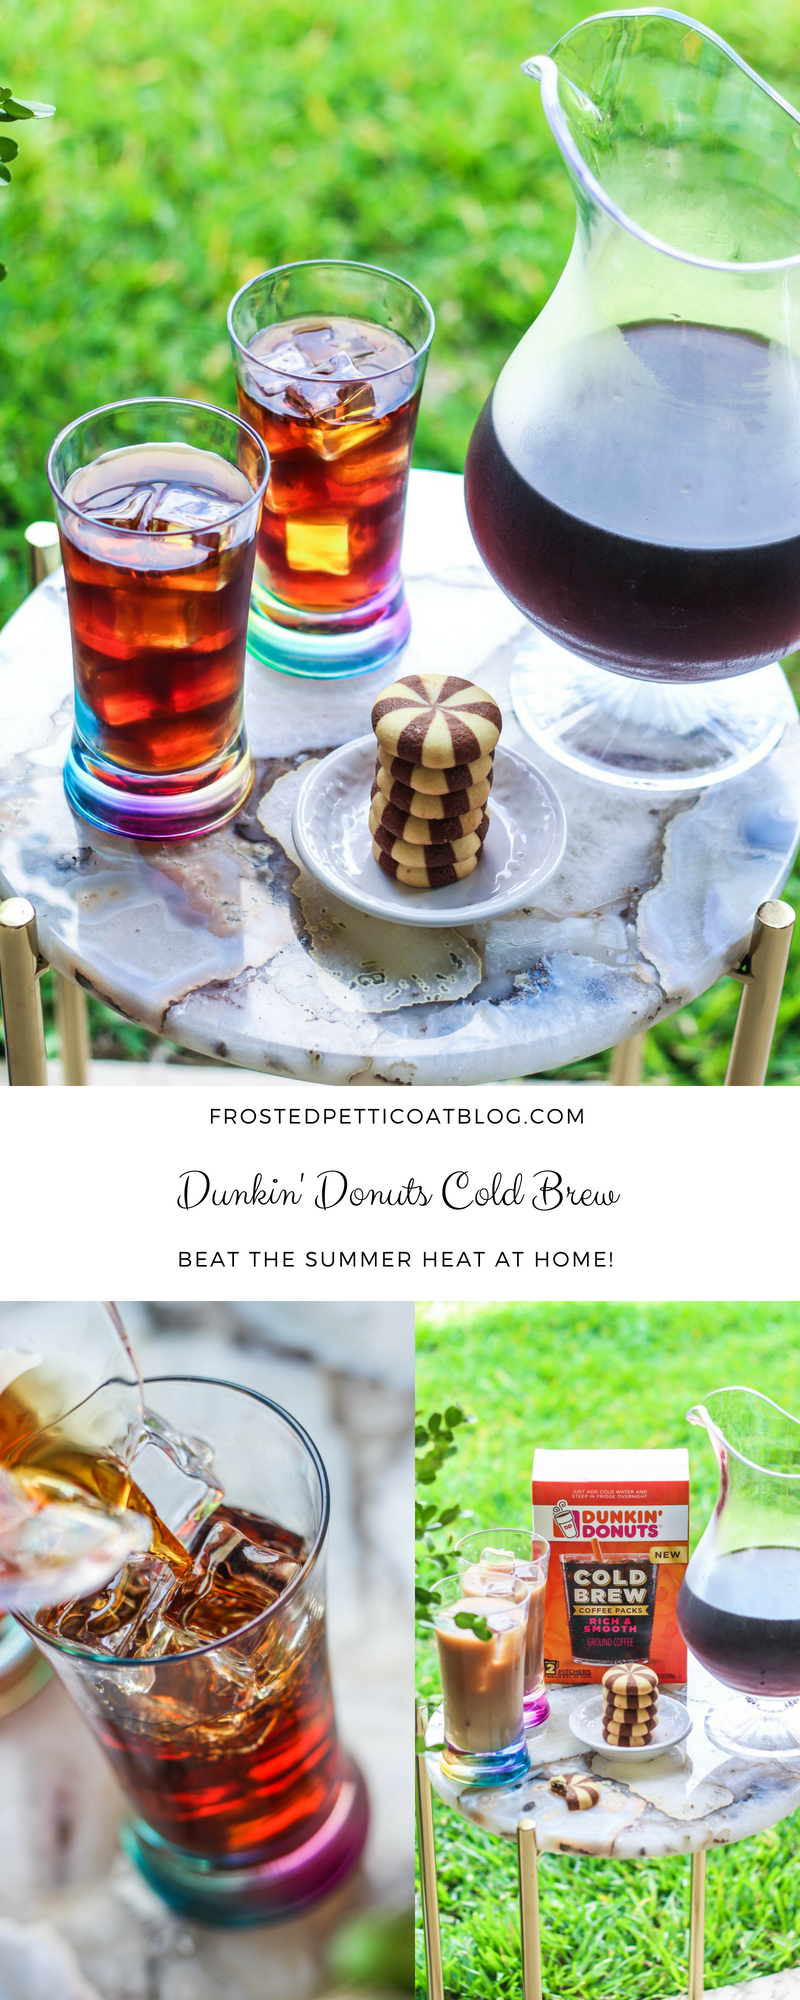 Beat the Heat with Dunkin' Donuts Cold Brew Cold brew